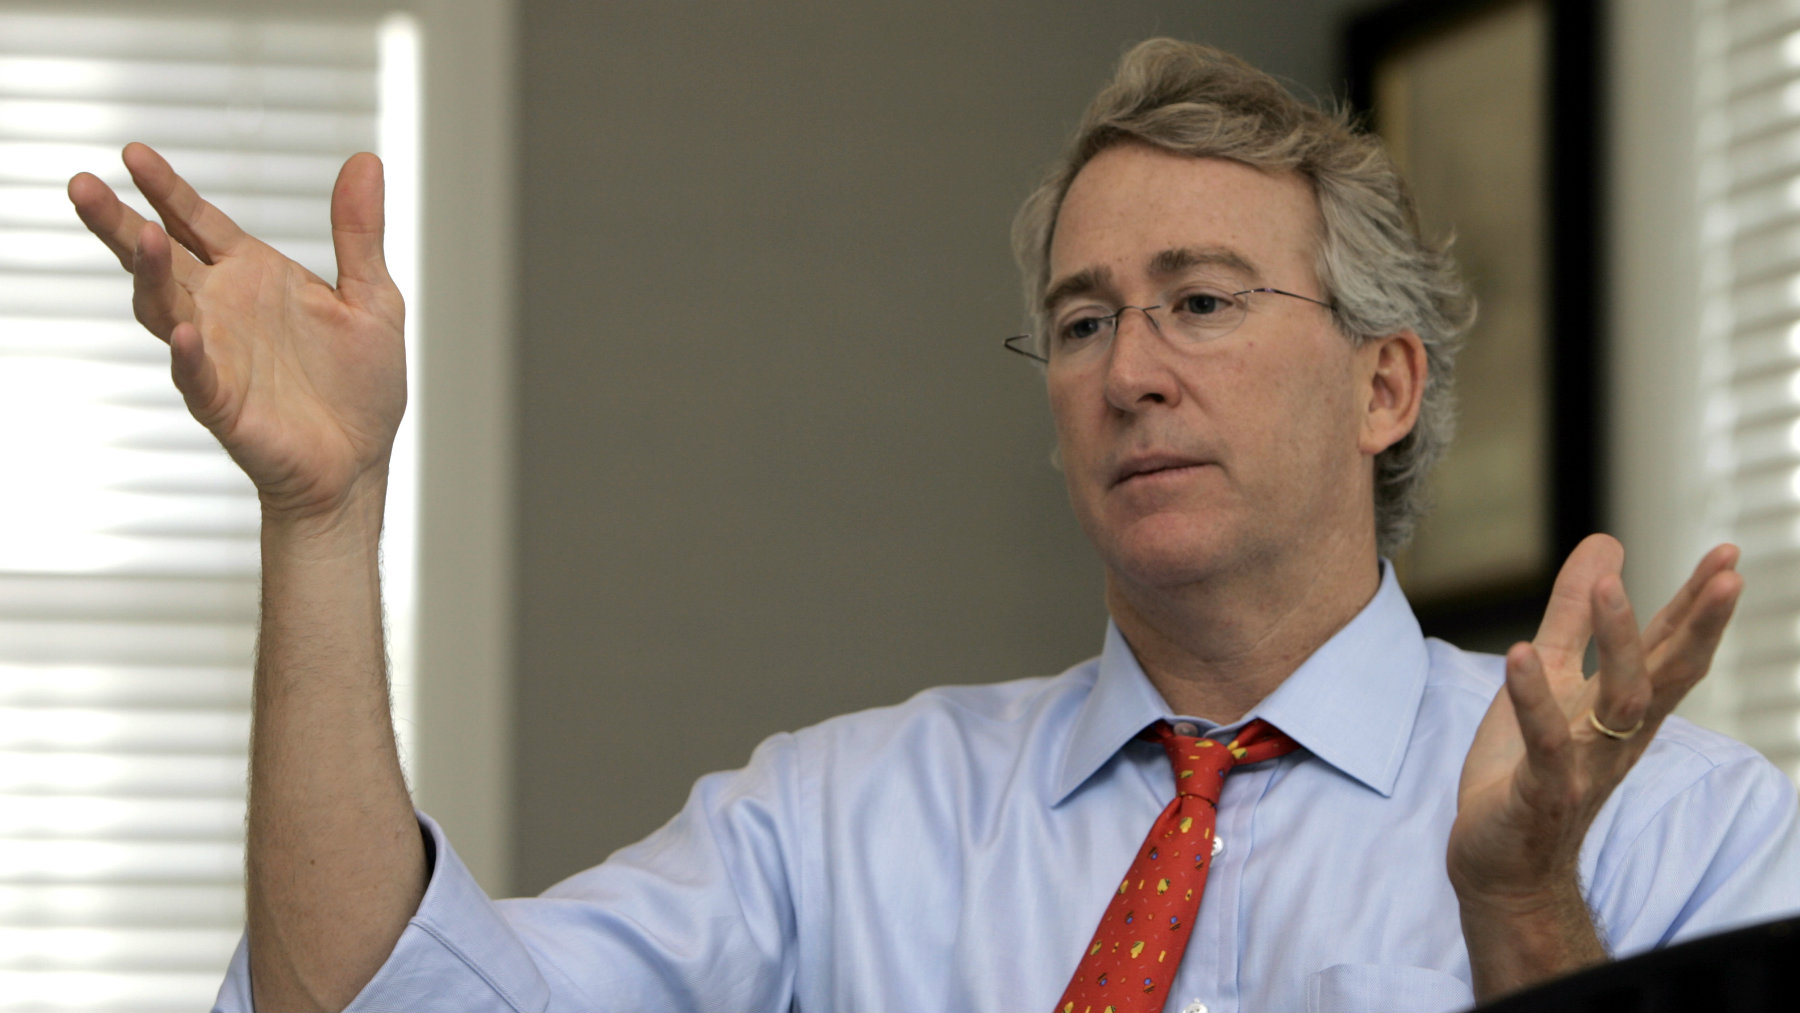 Aubrey McClendon, co-founder of Chesapeake Energy Corp., is pictured during a 2005 interview.